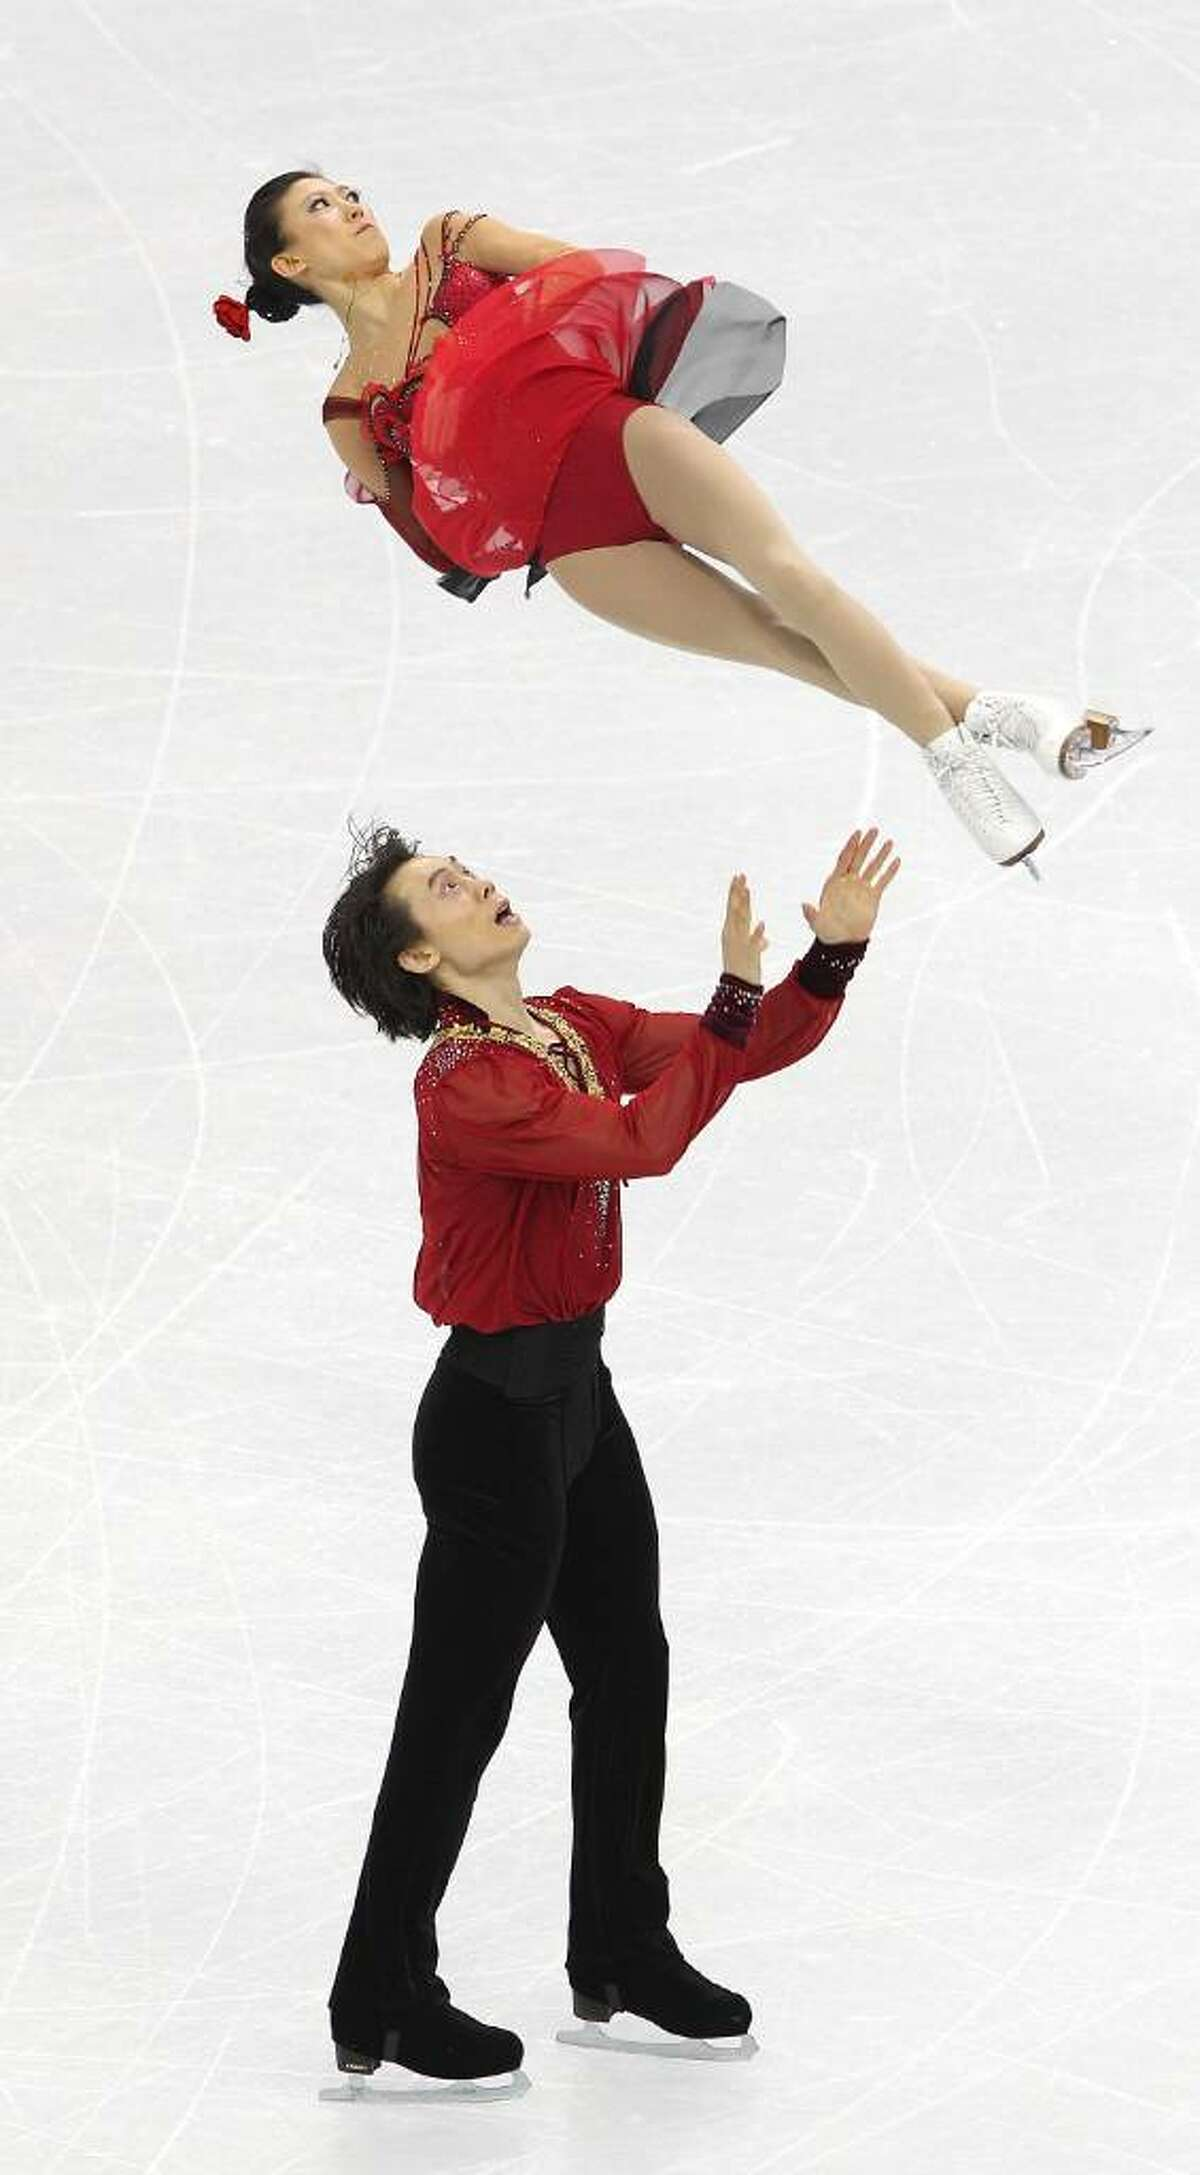 VANCOUVER, BC - FEBRUARY 15: Qing Pang and Jian Tong of China compete in the Figure Skating Pairs Free Program on day 4 of the Vancouver 2010 Winter Olympics at the Pacific Coliseum on February 15, 2010 in Vancouver, Canada. (Photo by Cameron Spencer/Getty Images) *** Local Caption *** Qing Pang;Jian Tong